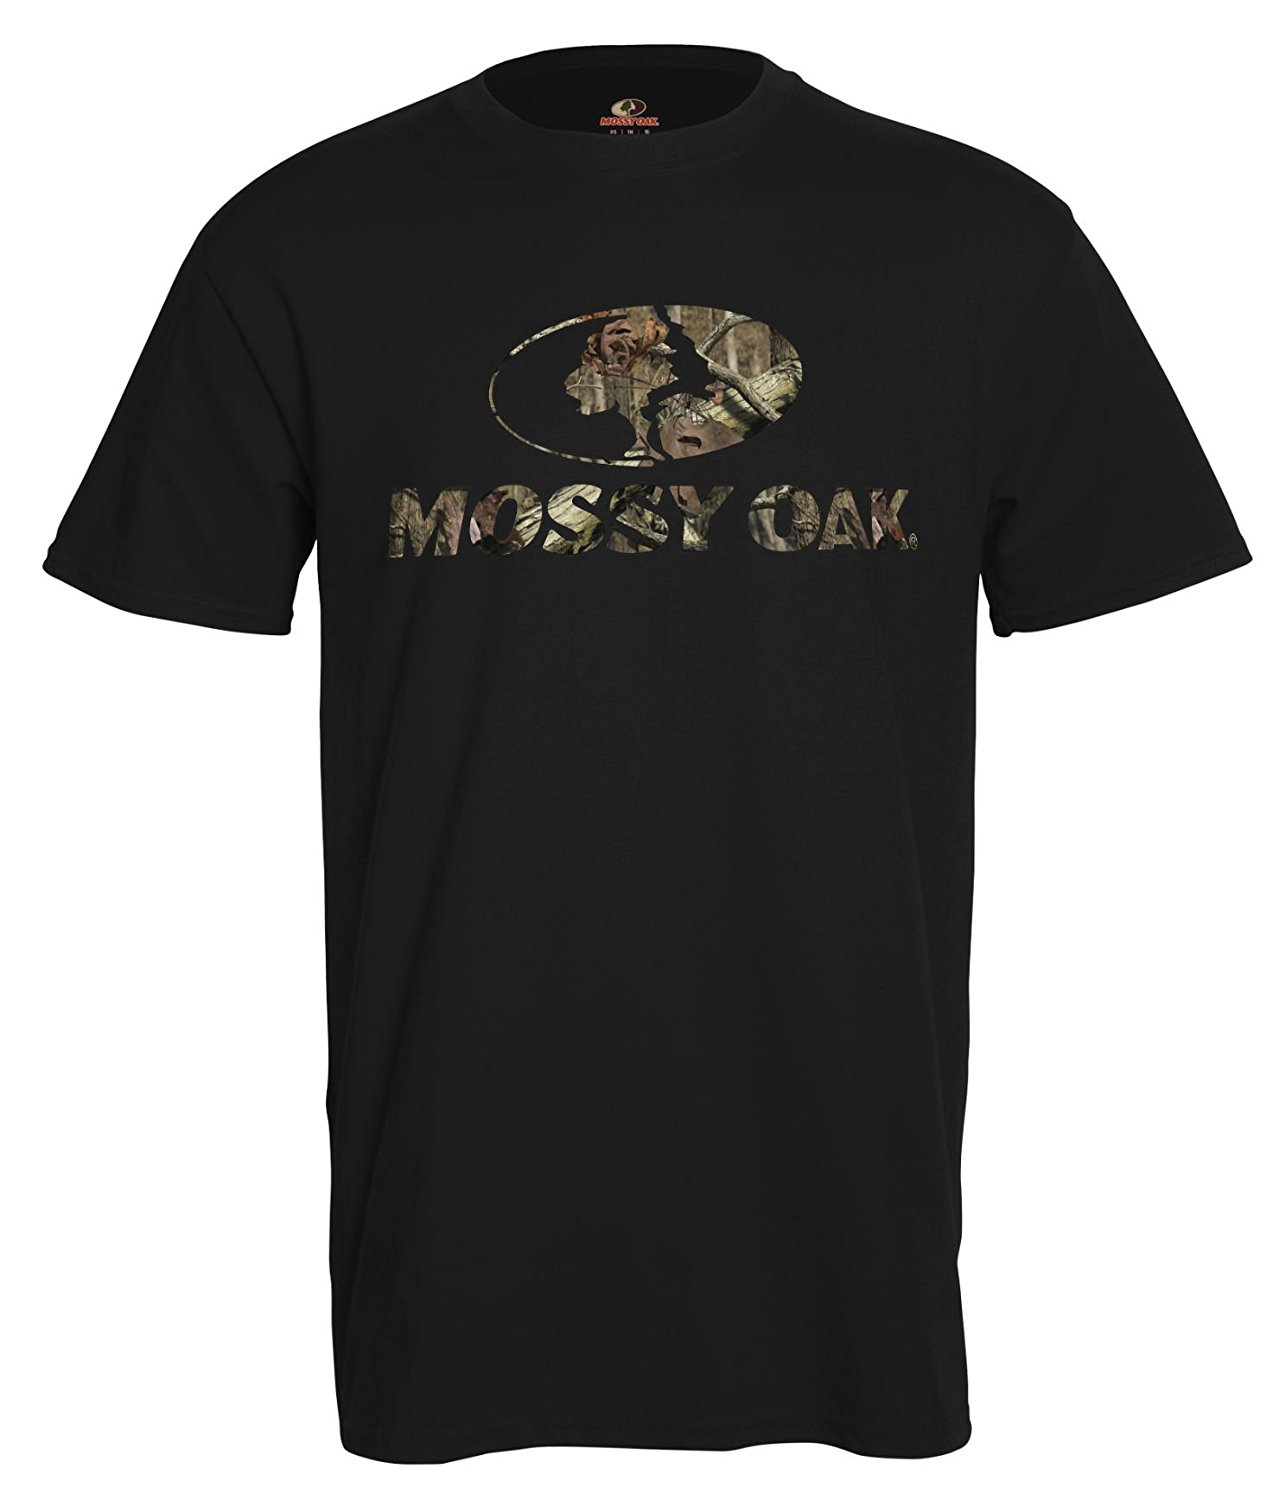 Mossy Oak Camo Hunting T-Shirts (Medium, Mossy Oak Black Front Logo) by 755899395743